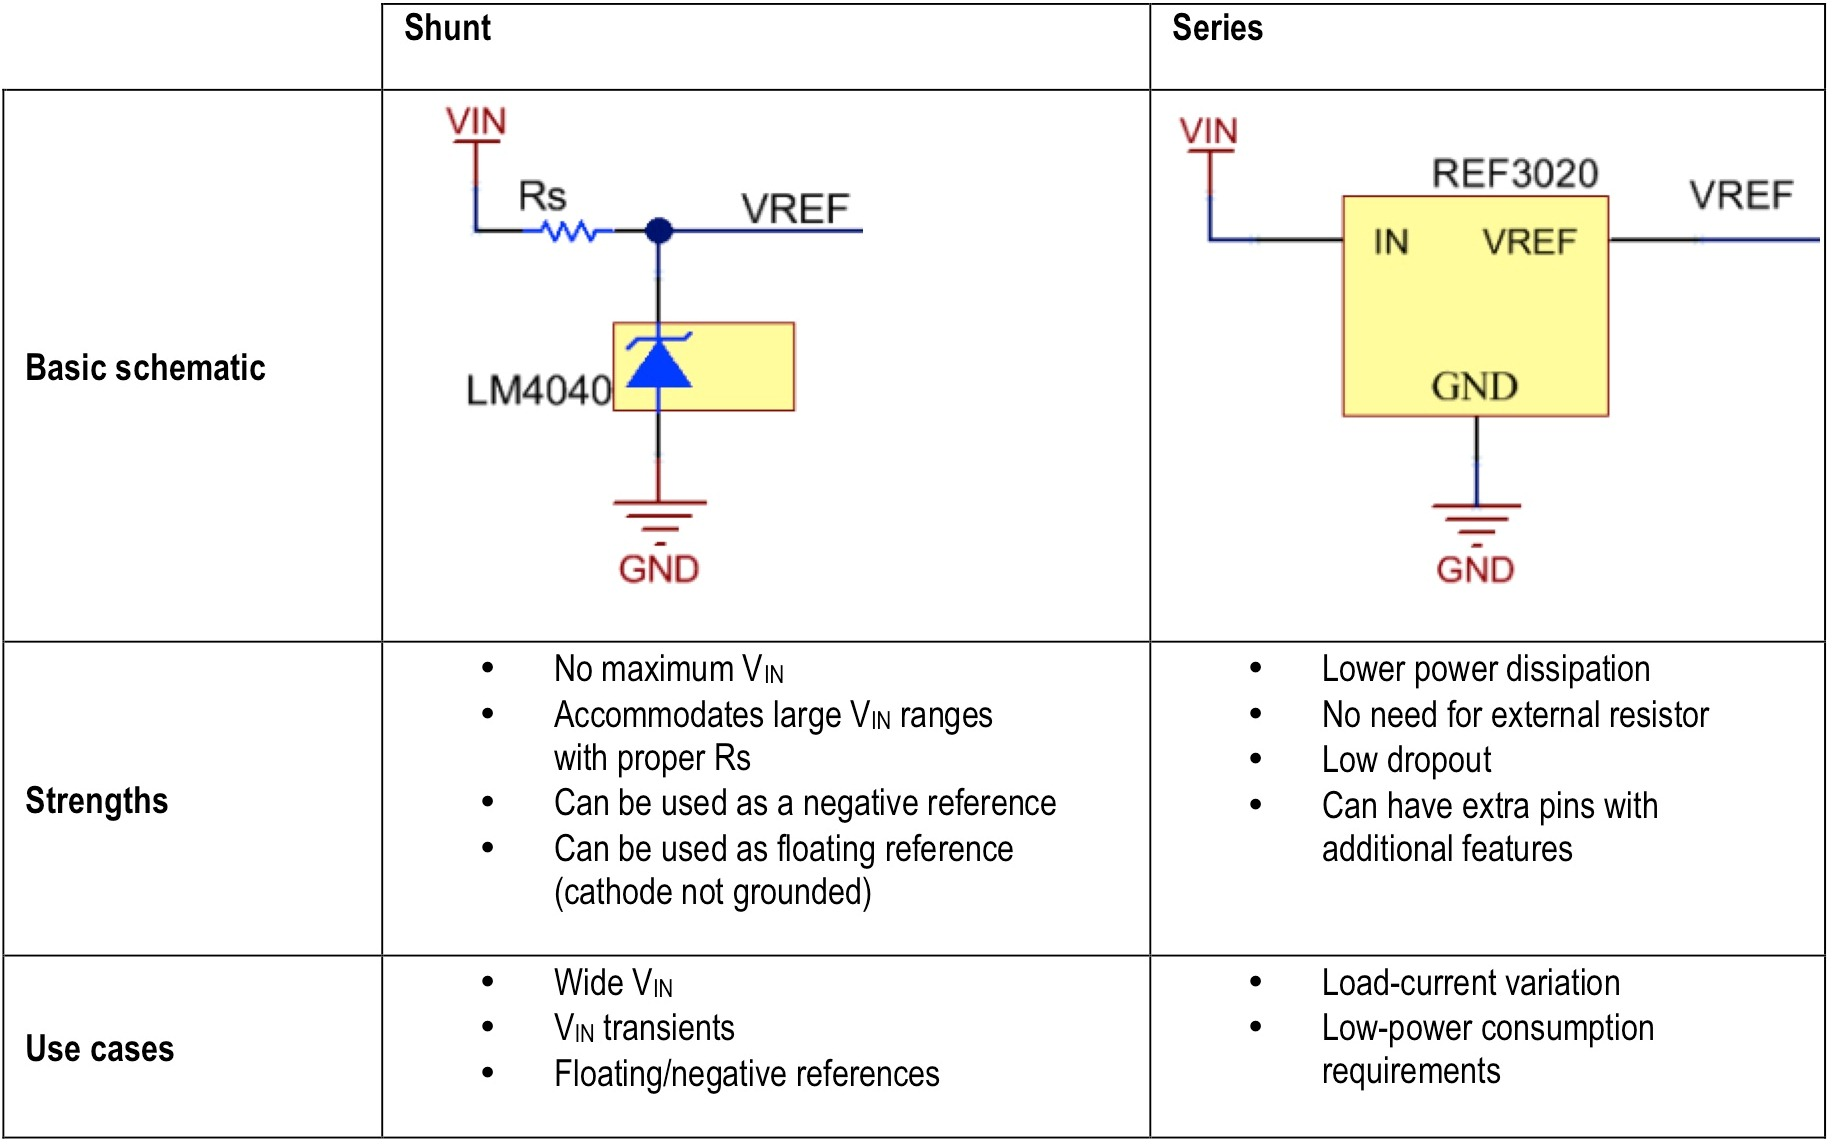 hight resolution of figure 1 typical comparison table of shunt versus series voltage references